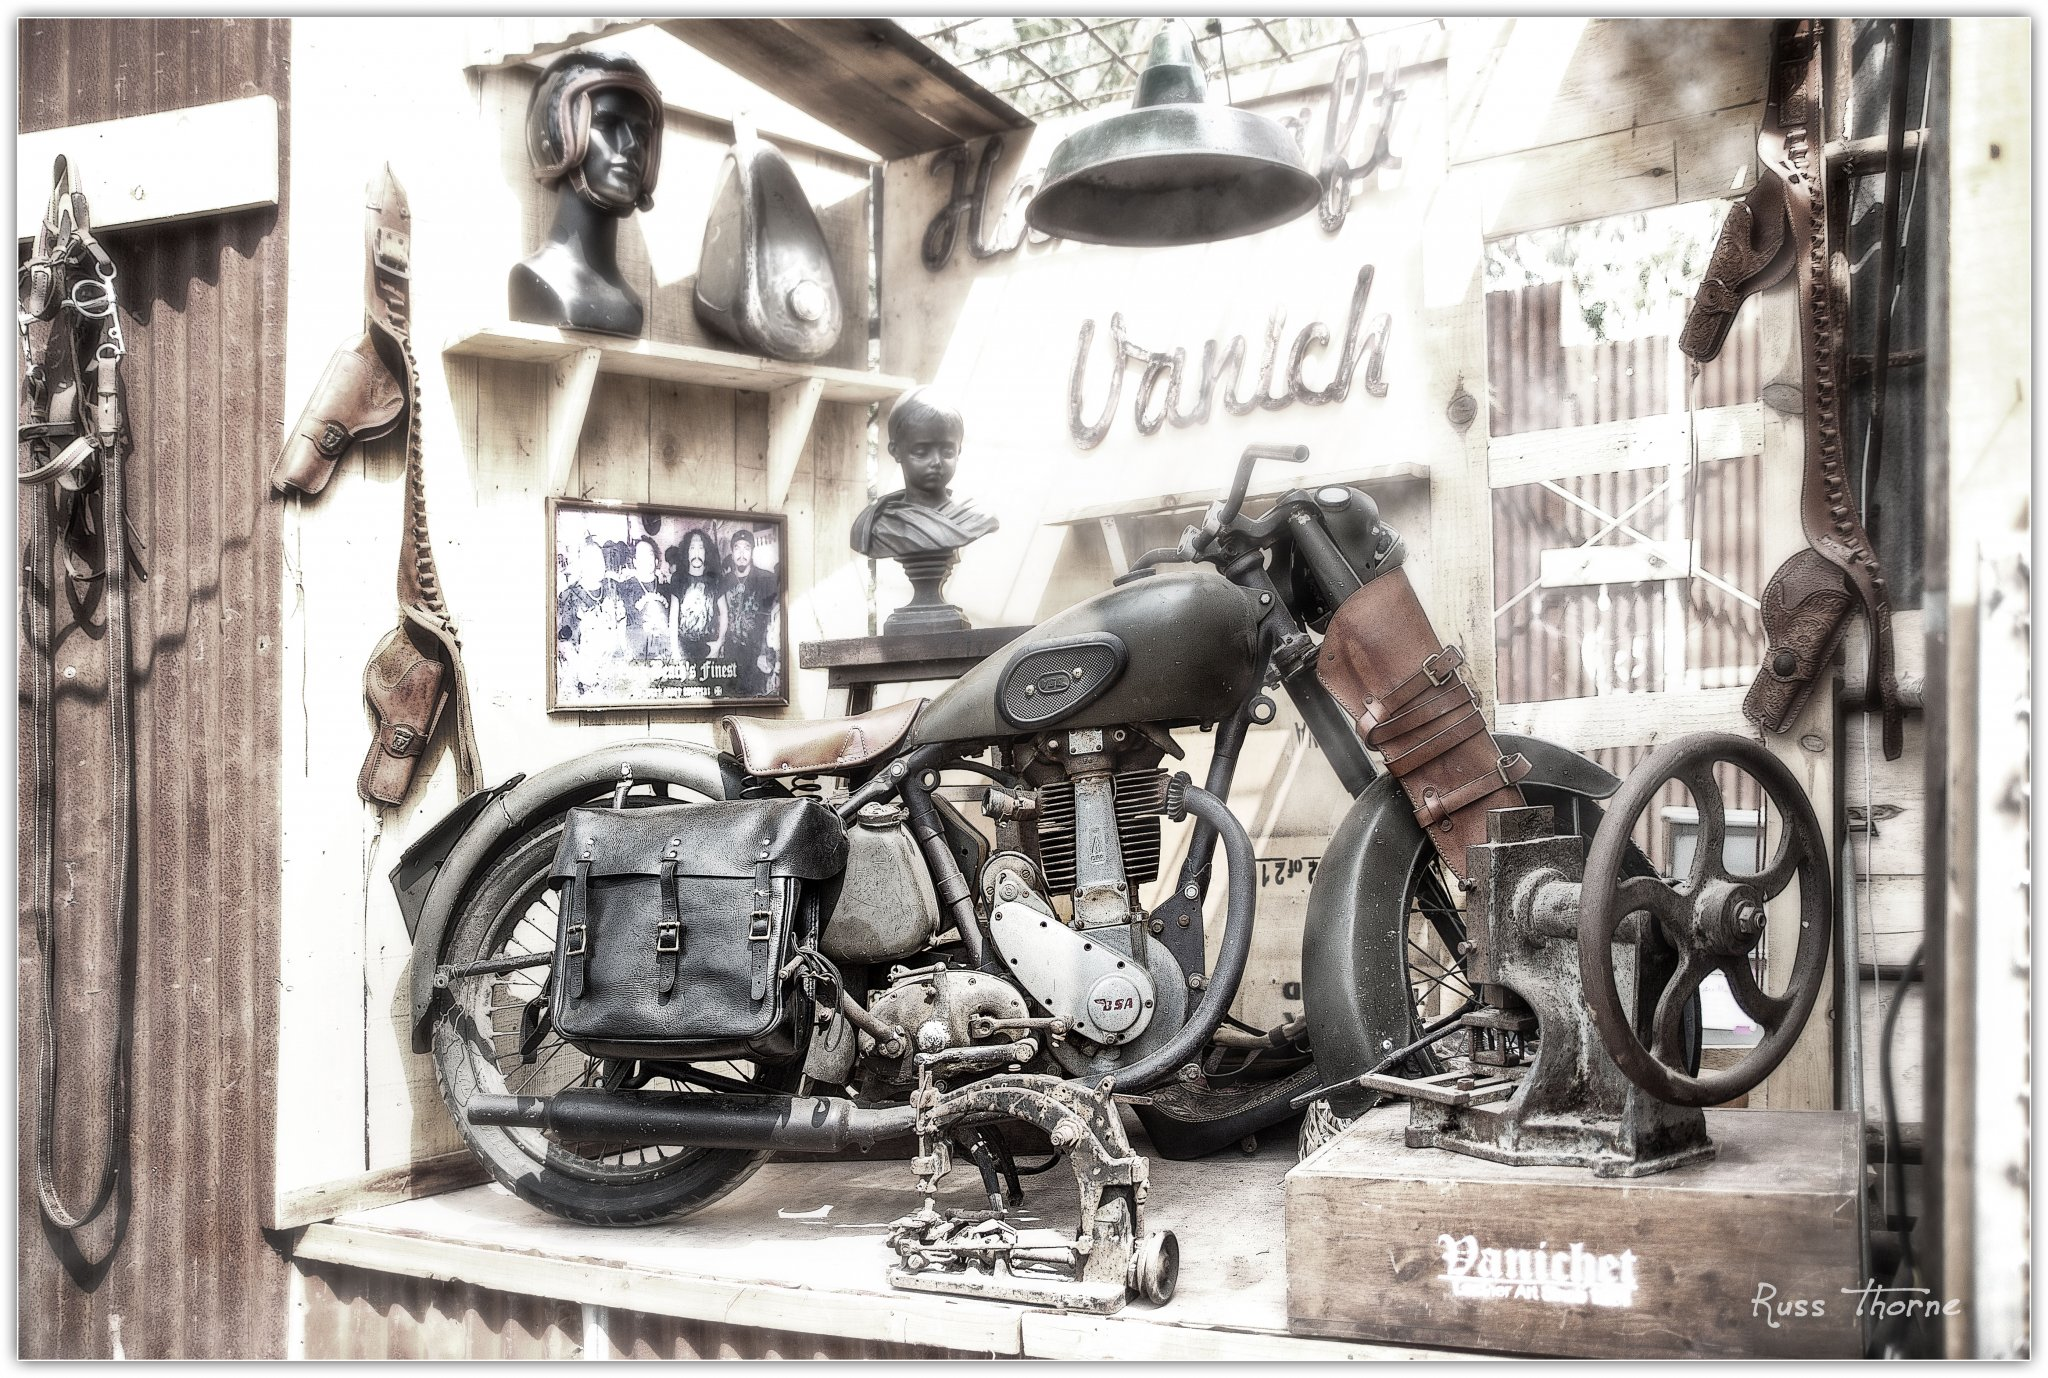 2018-02-11-burapha-bike-show-old-motorcycle-on-display-stage-IMG_9756.thumb.jpg.39914195092959bb654cbec804729f3c.jpg